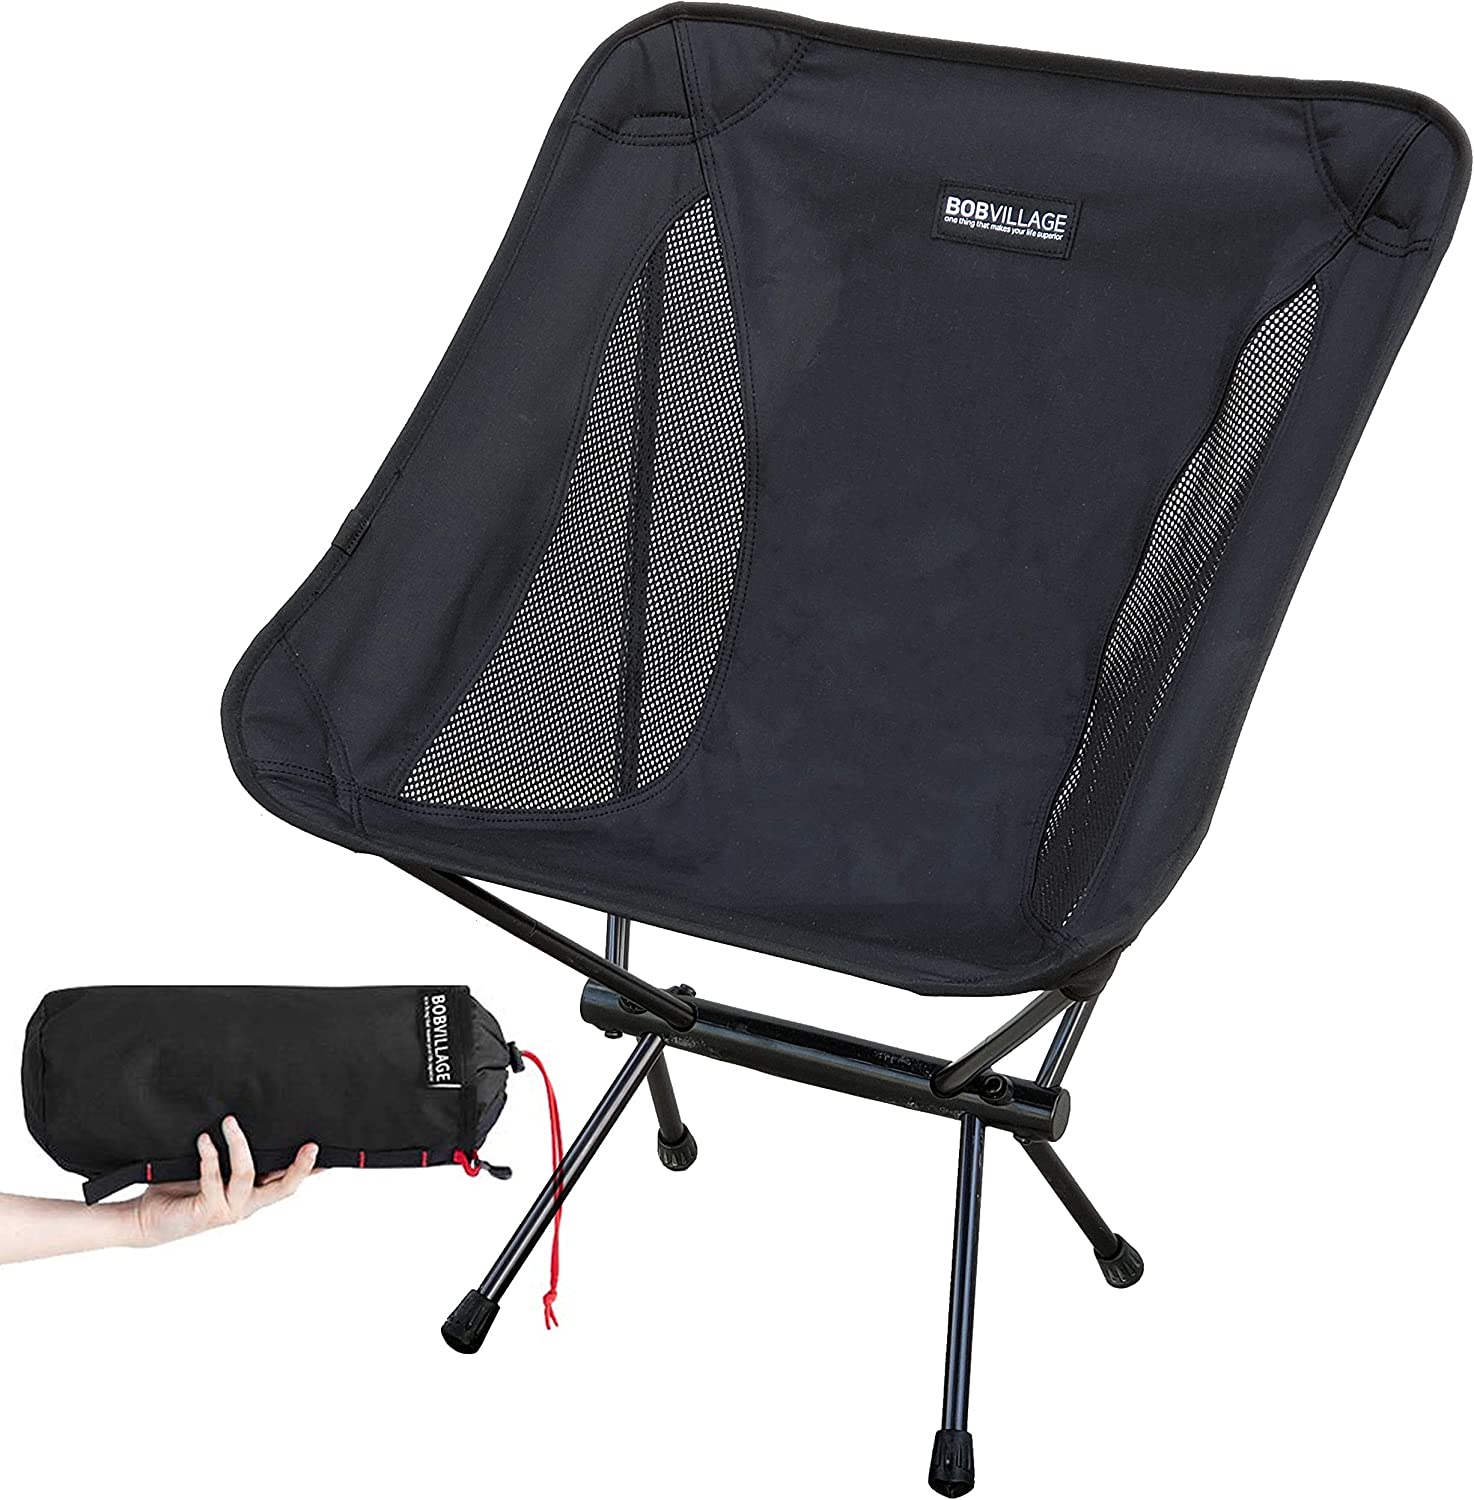 BOBVILLAGE Ultra-Light Folding Camping Chair, Cordura Fabric, Portable Compact Lawn Stool for Beach Travel Hiking Picnic Festival and All Outdoor Activities